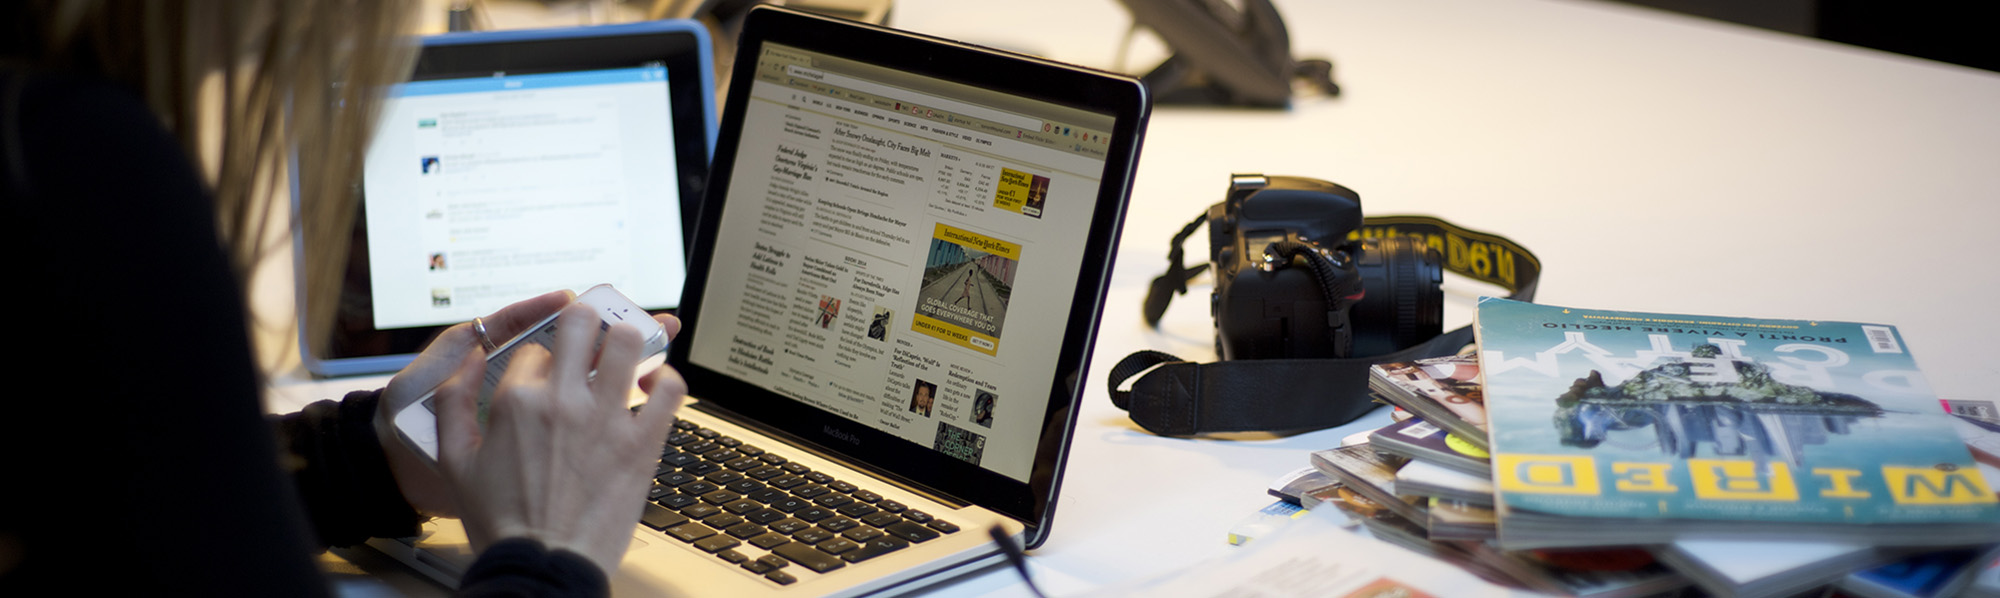 Web Editing: come evolve il giornalismo nell'era digitale